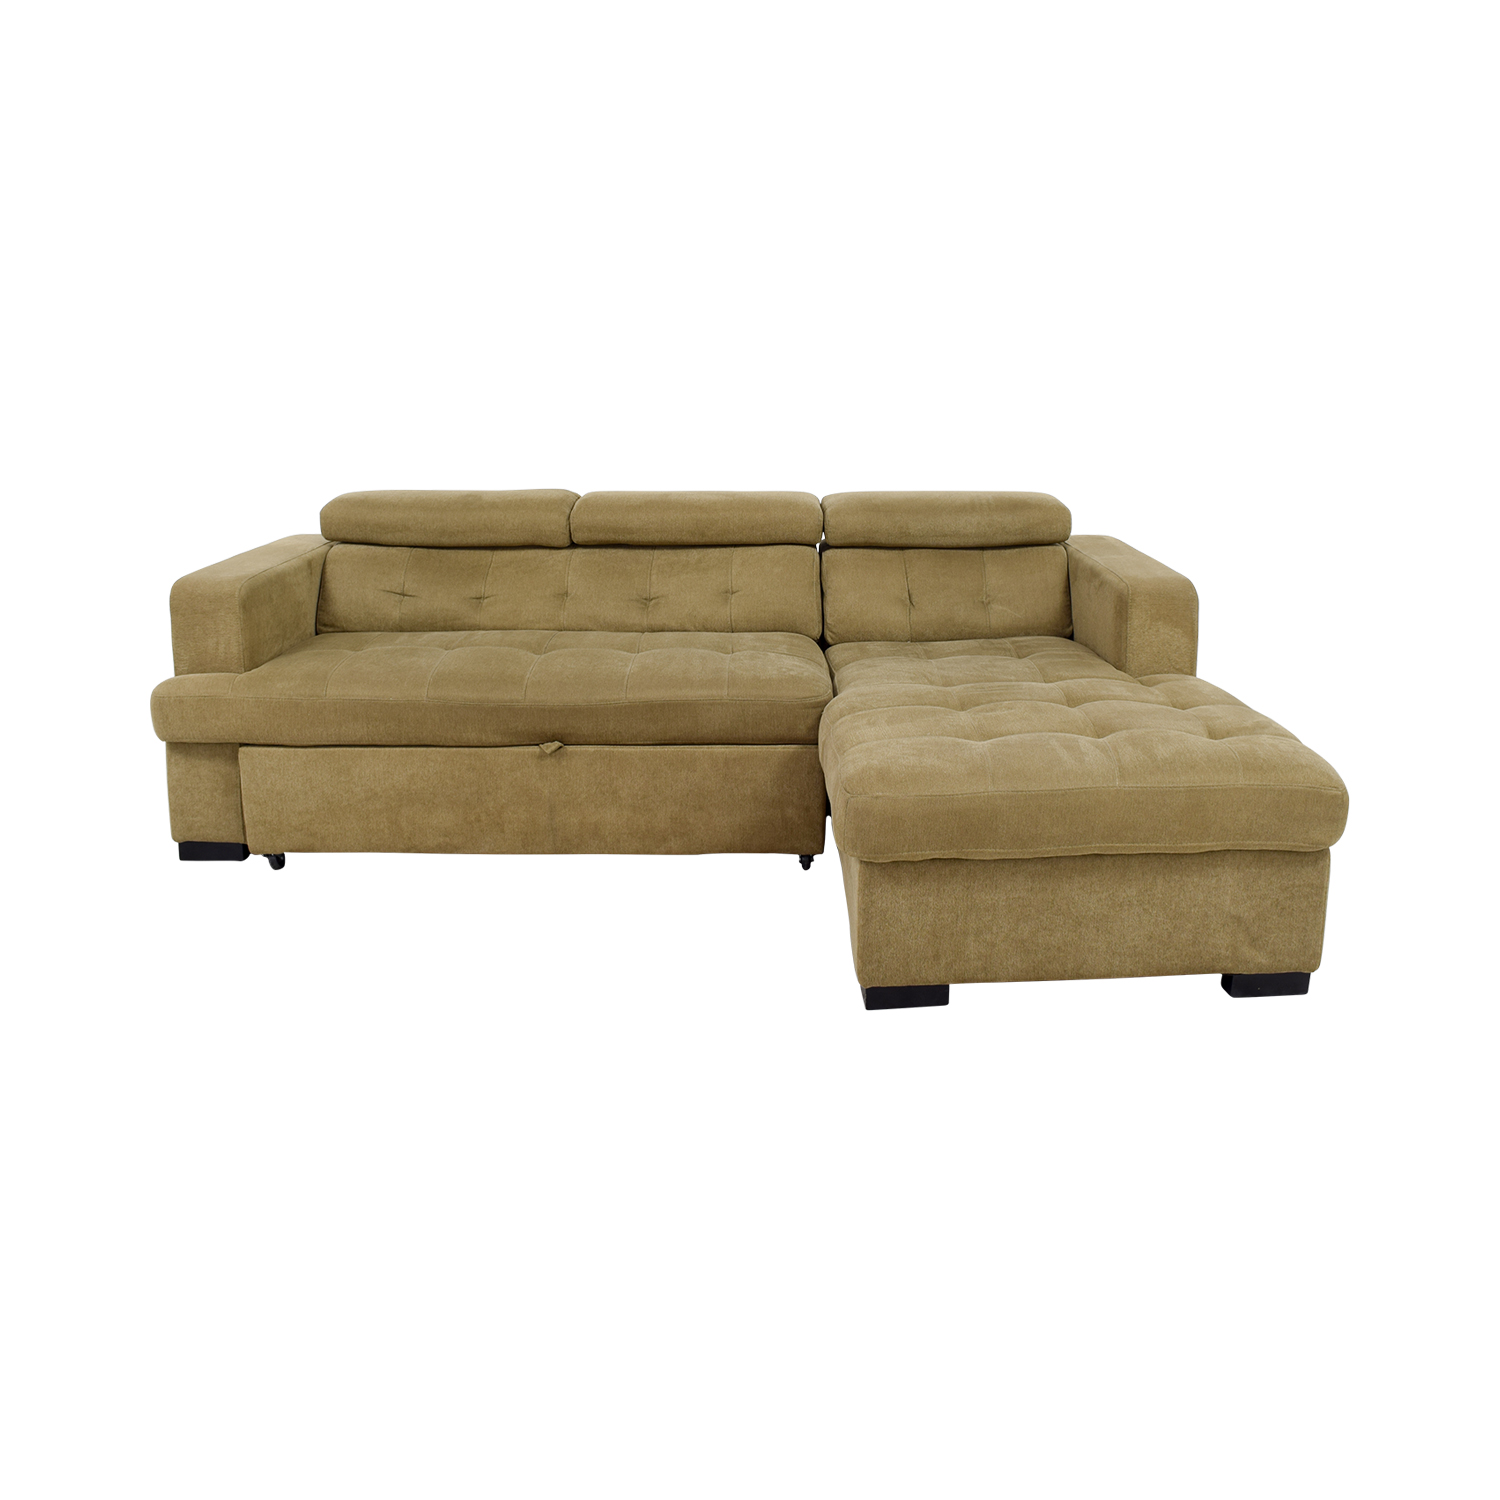 Bobs Sofas Bobs Sofas And Loveseats 1025theparty